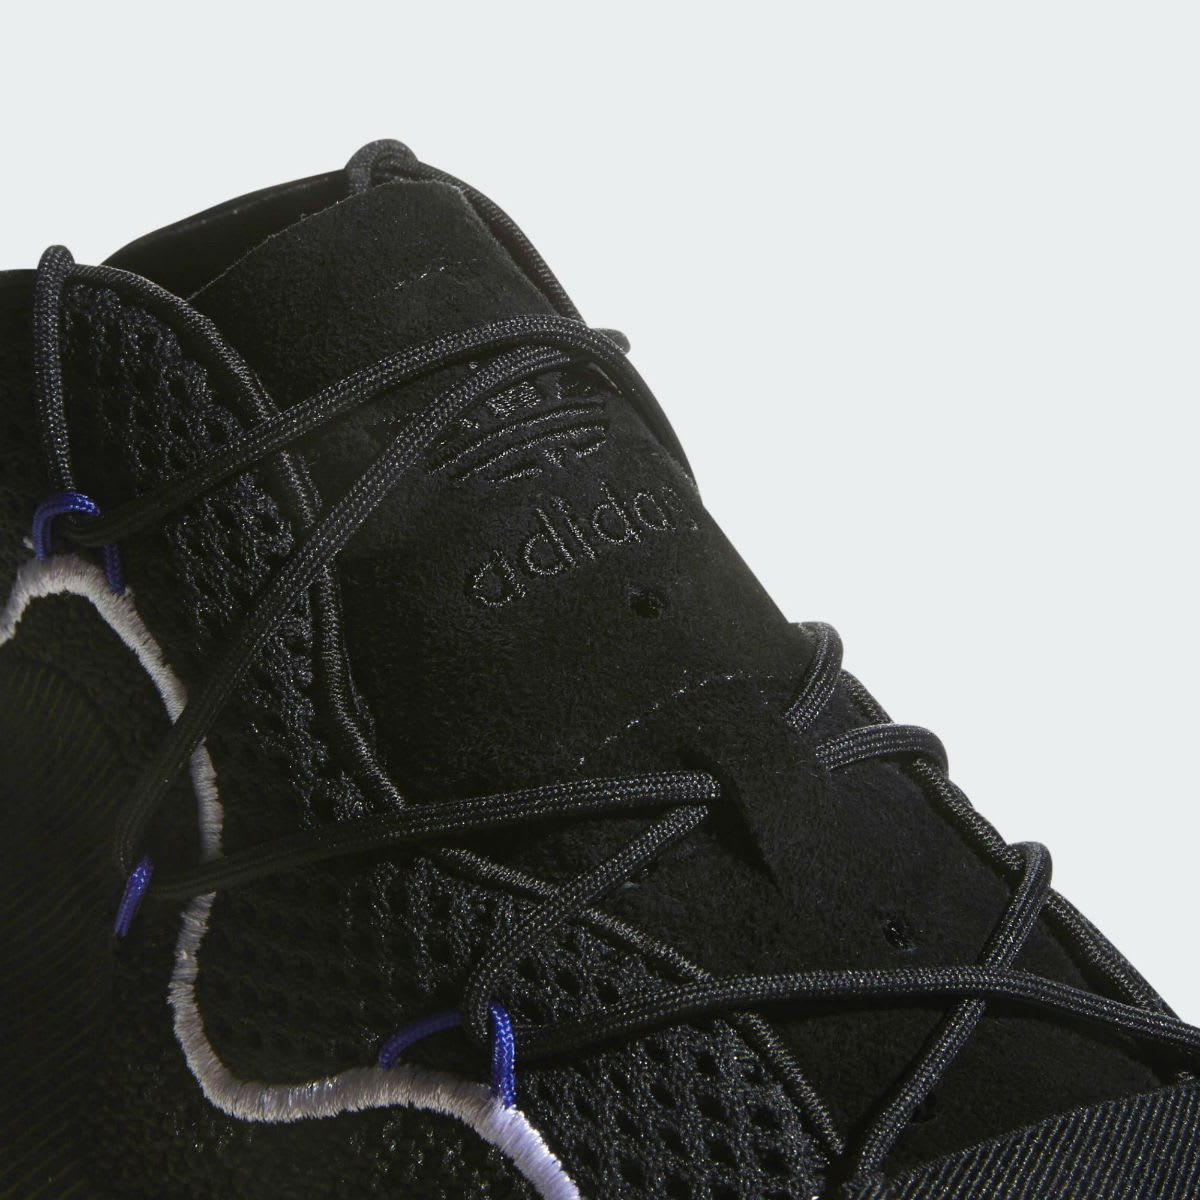 Adidas Crazy BYW LVL 1 Black White Release Date CQ0991 Tongue